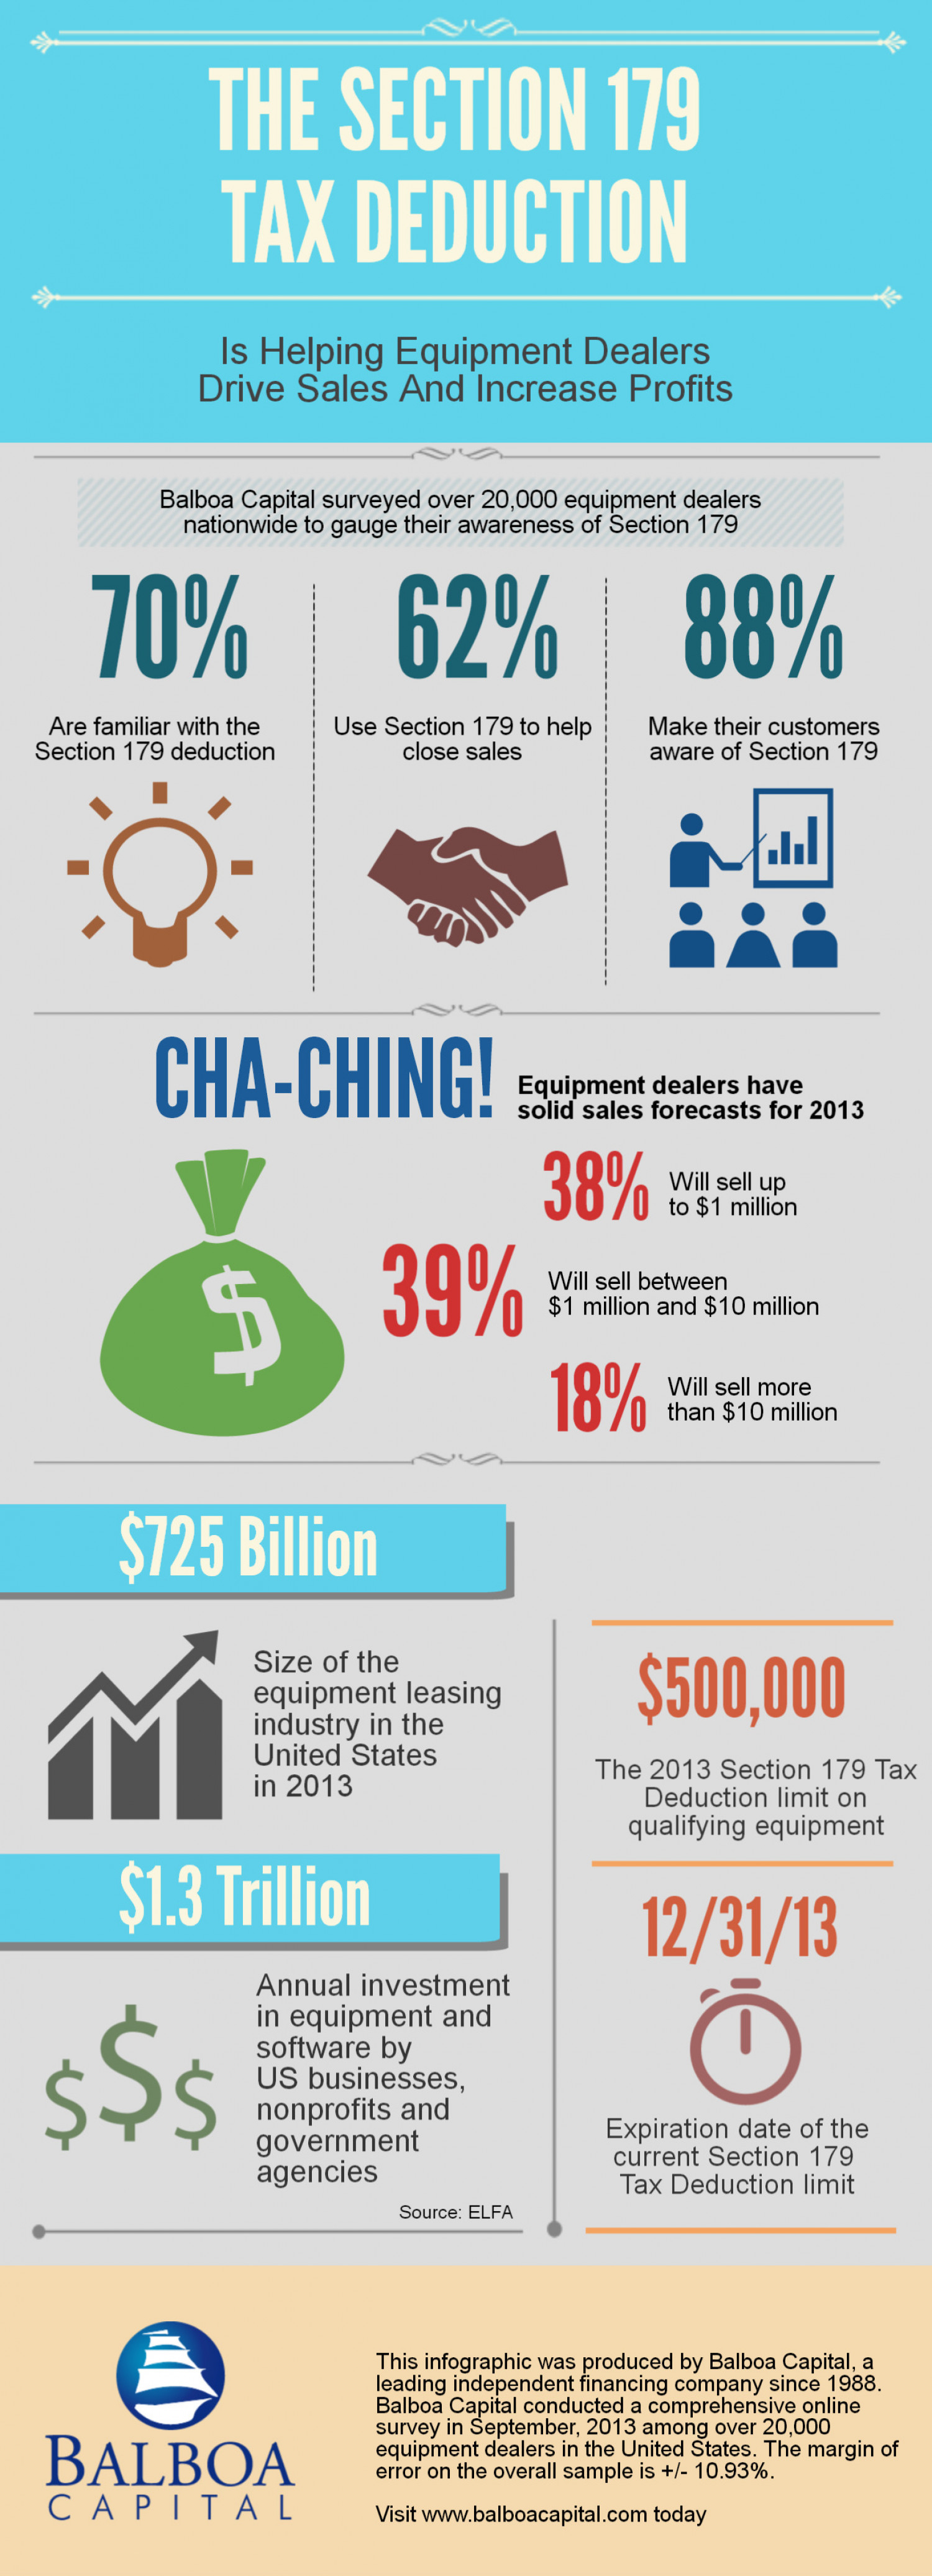 Section 179 Tax Deduction Infographic